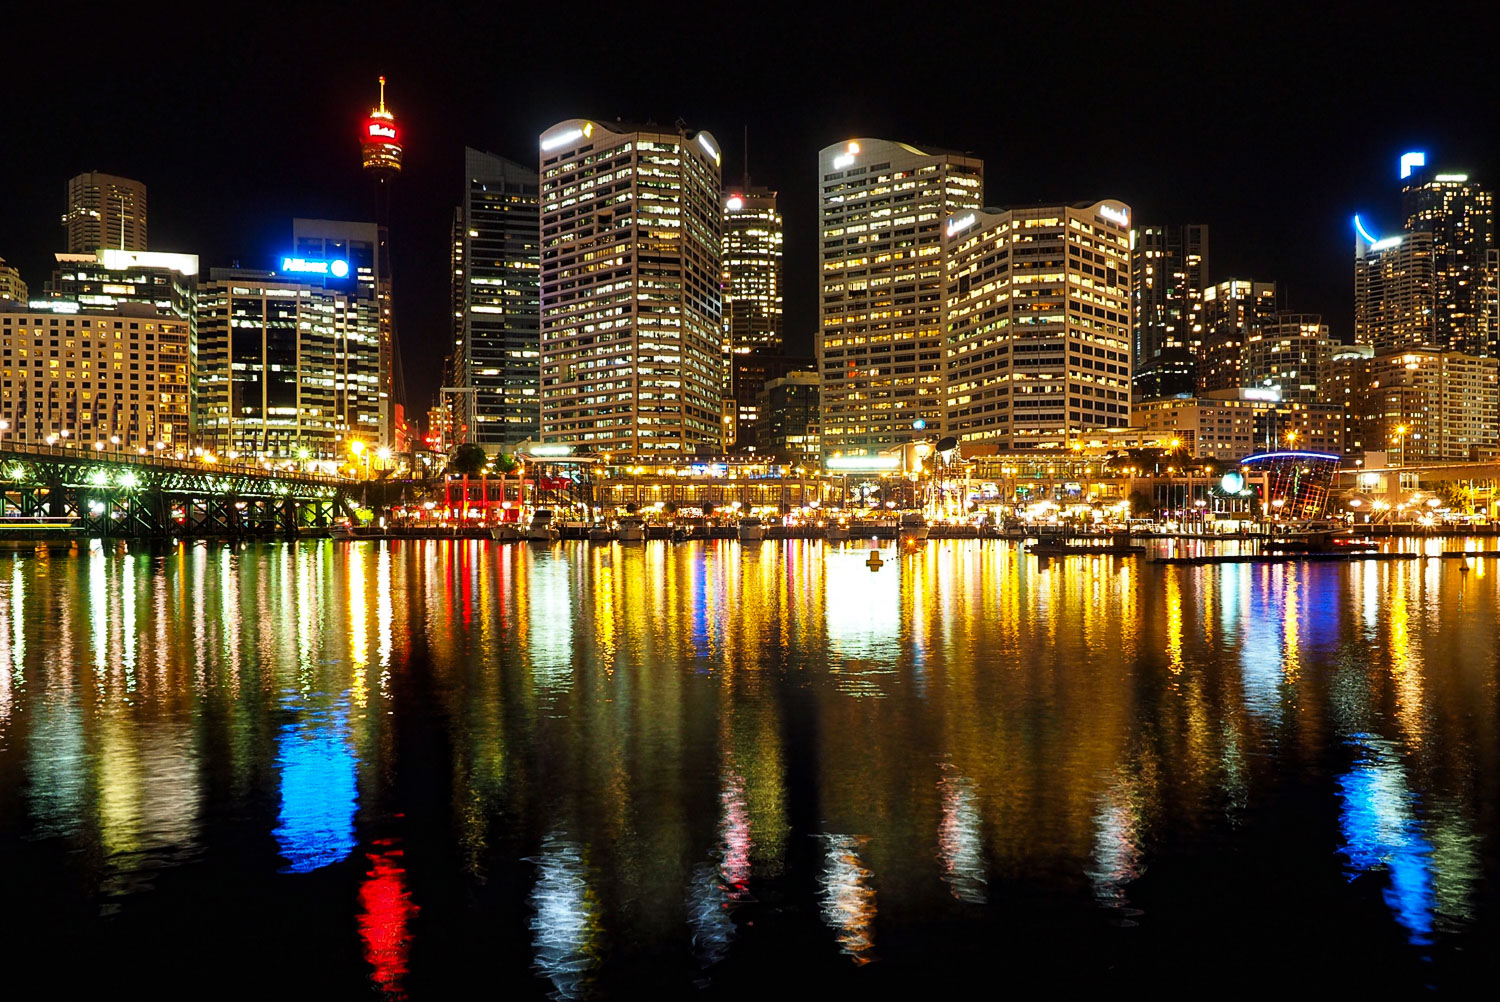 Darling Harbour, Sydney, Australia. 6 sec at f/8